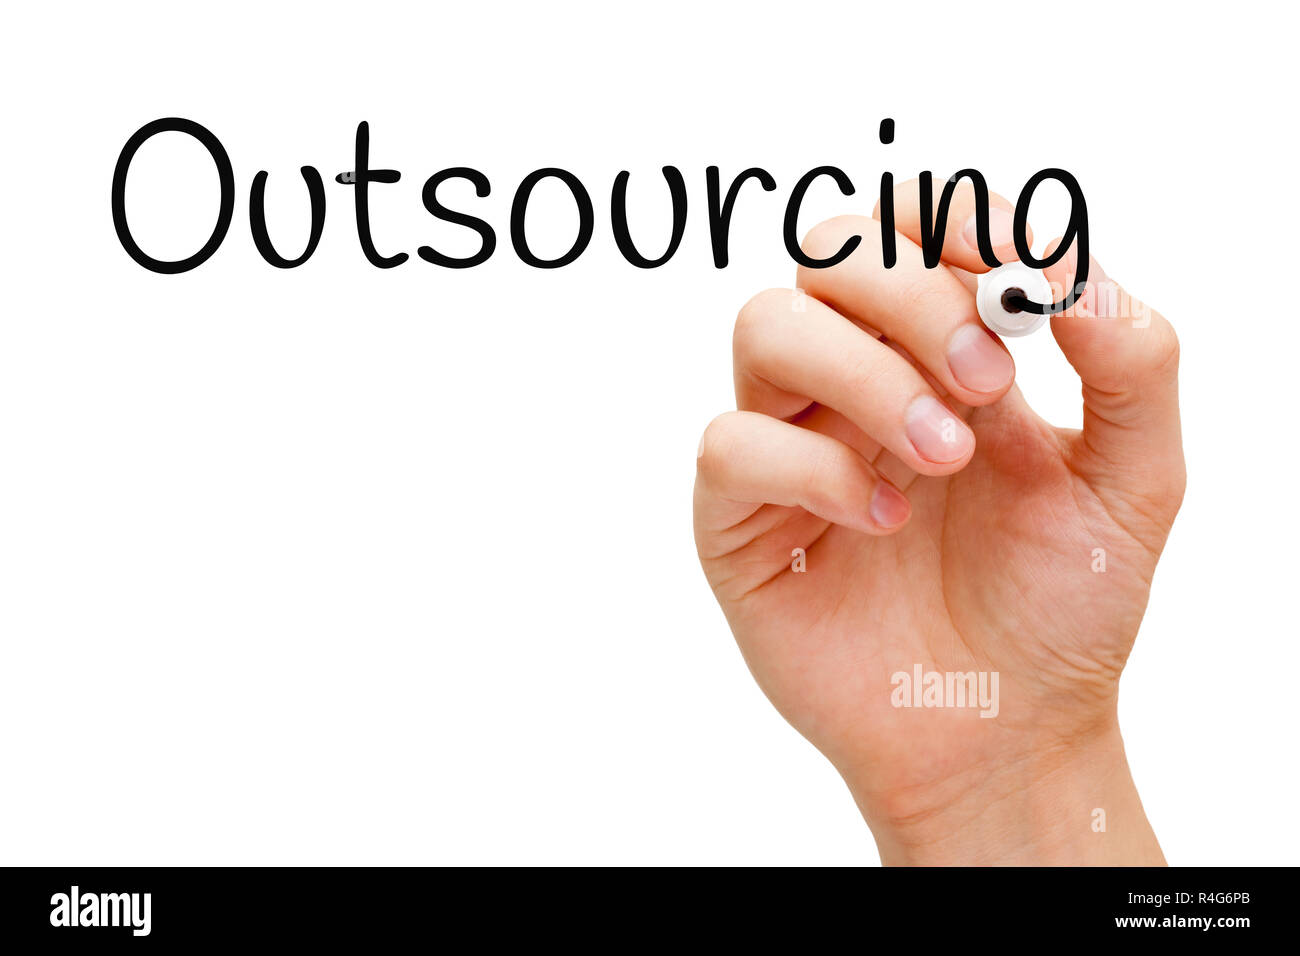 Outsourcing Handwritten With Black Marker - Stock Image